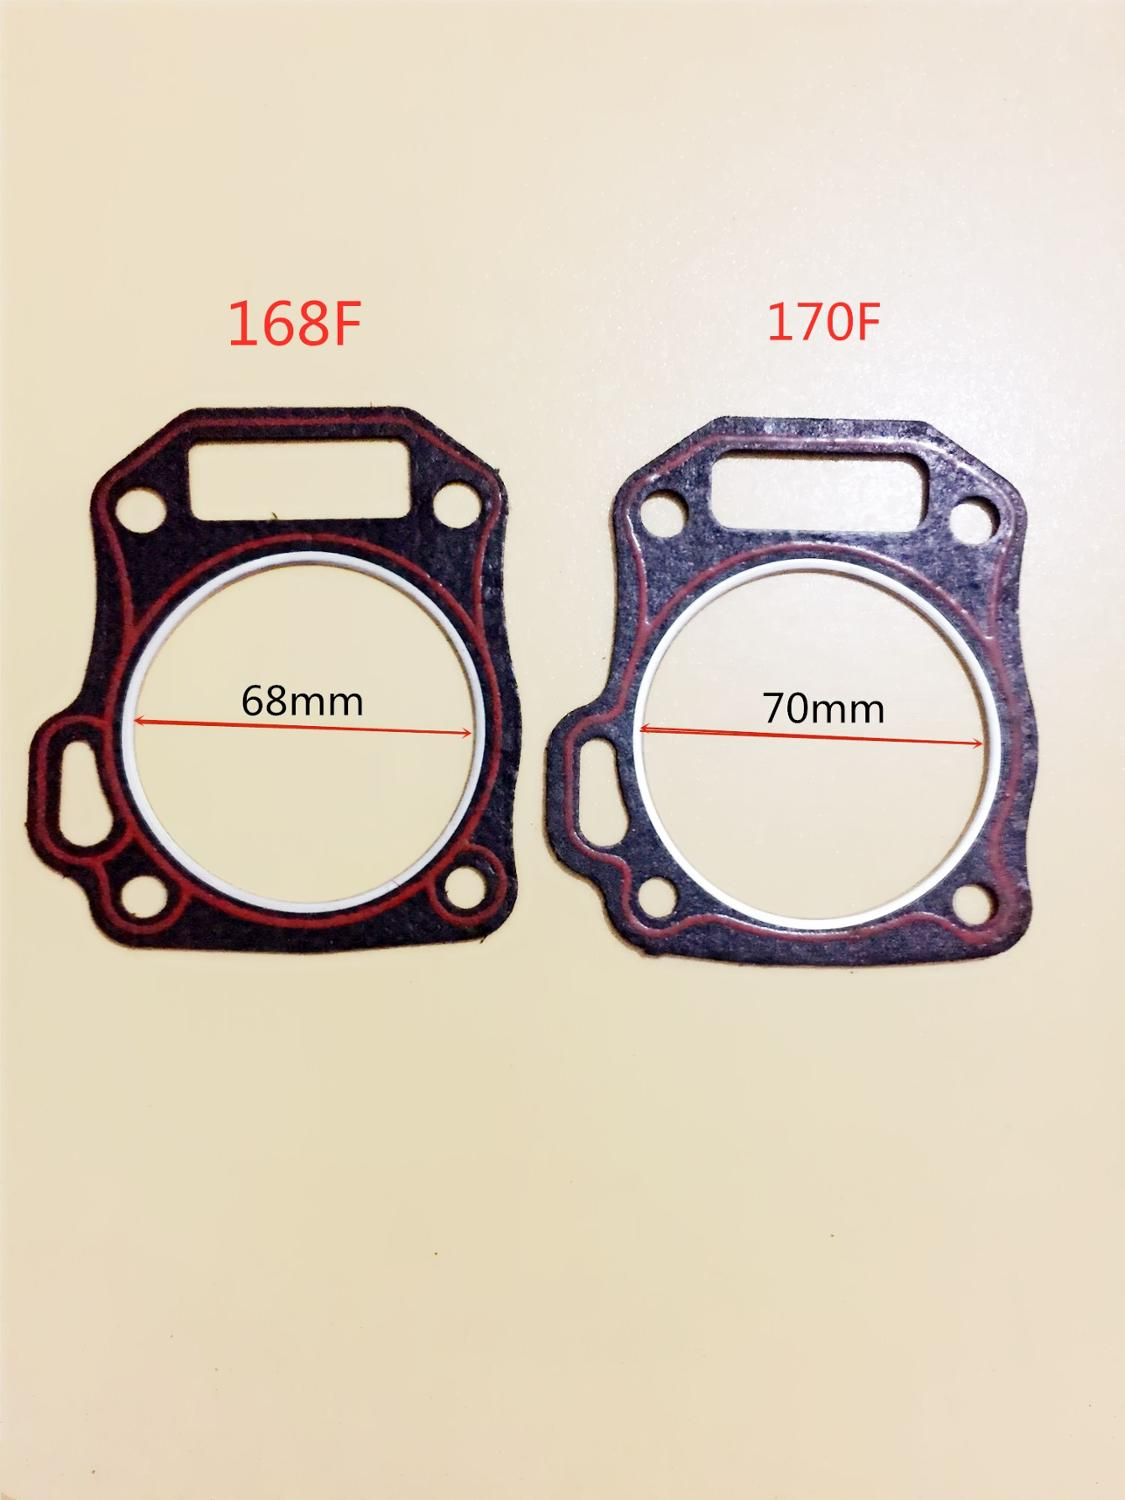 1pcs 2pcs Cylinder Head Gaskets For Honda GX160 GX200 168F 170F 5.5HP 6.5HP 7HP Engine Motors Generator Water Pump High Quality